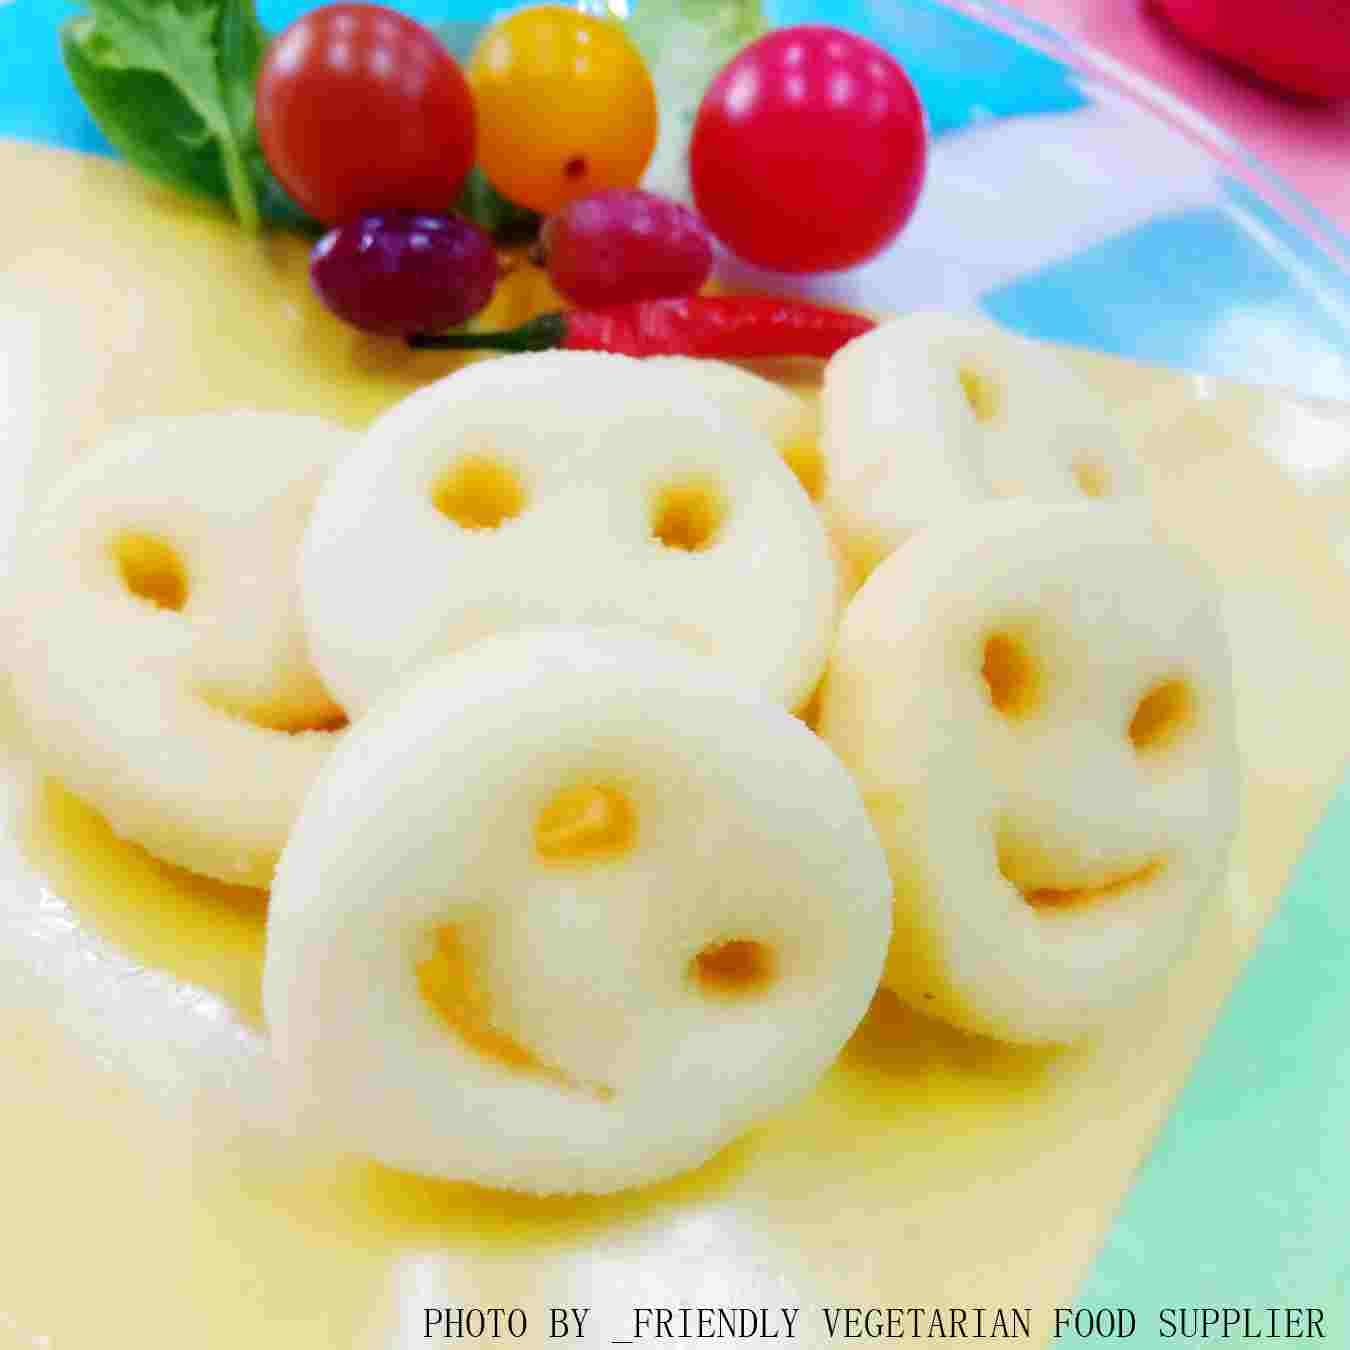 Image Smile Potato Hashbrown Smiley 善缘-微笑薯饼 600grams